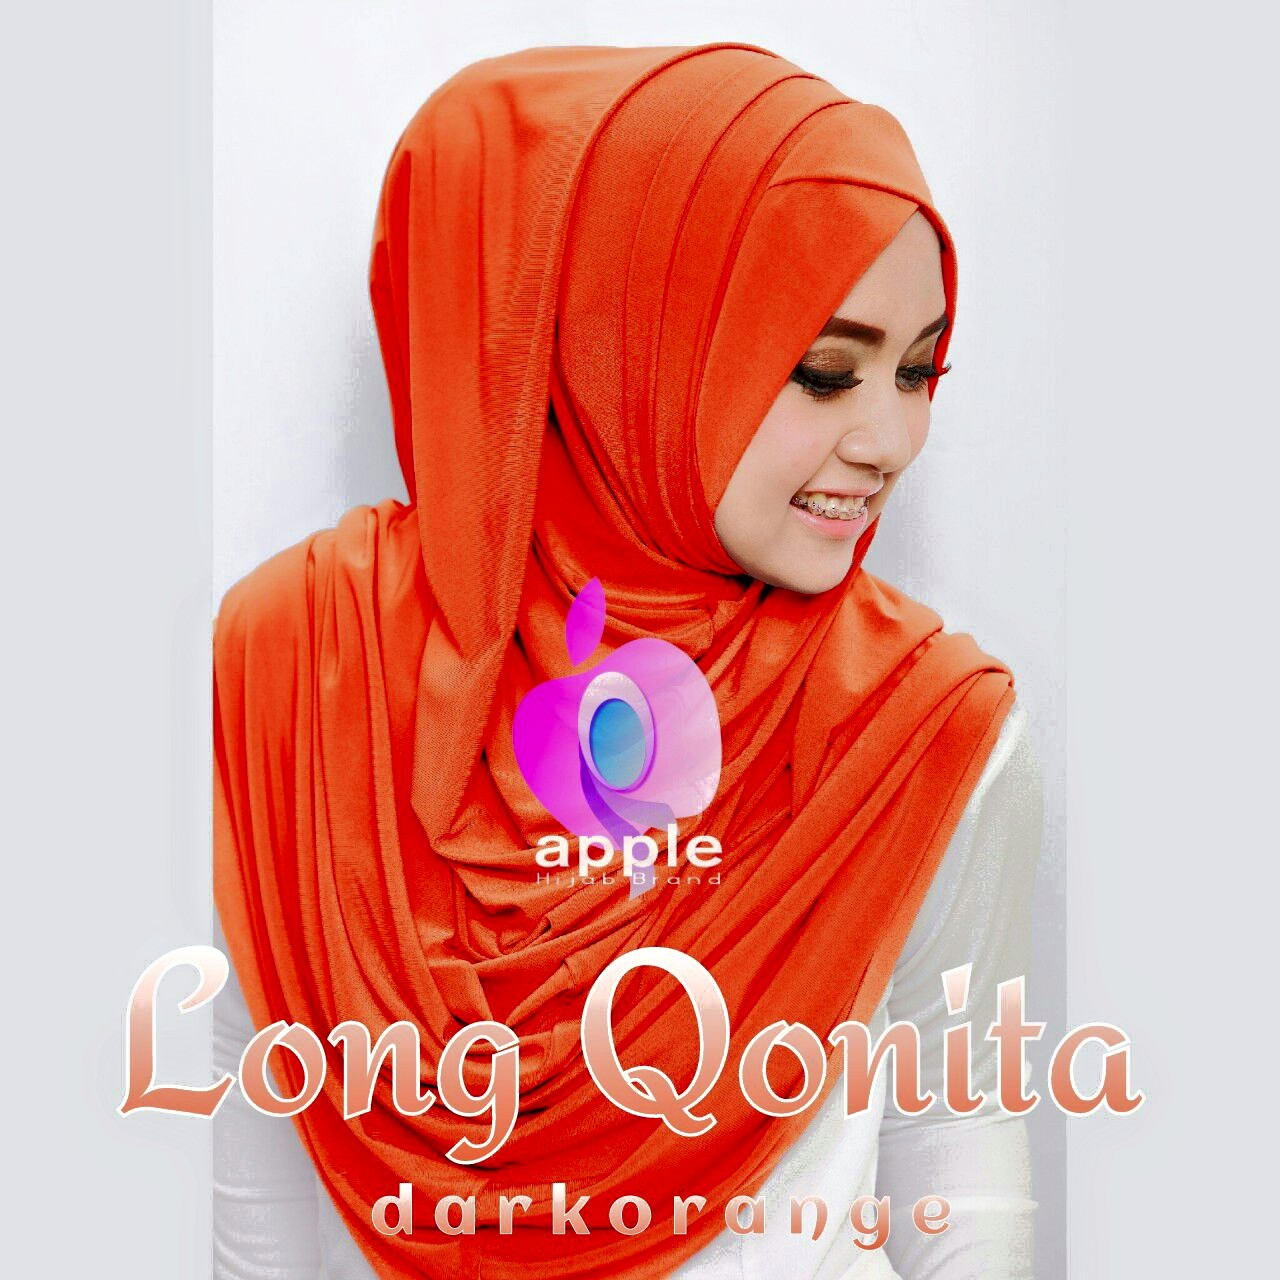 apple hijab long qonita darkorange